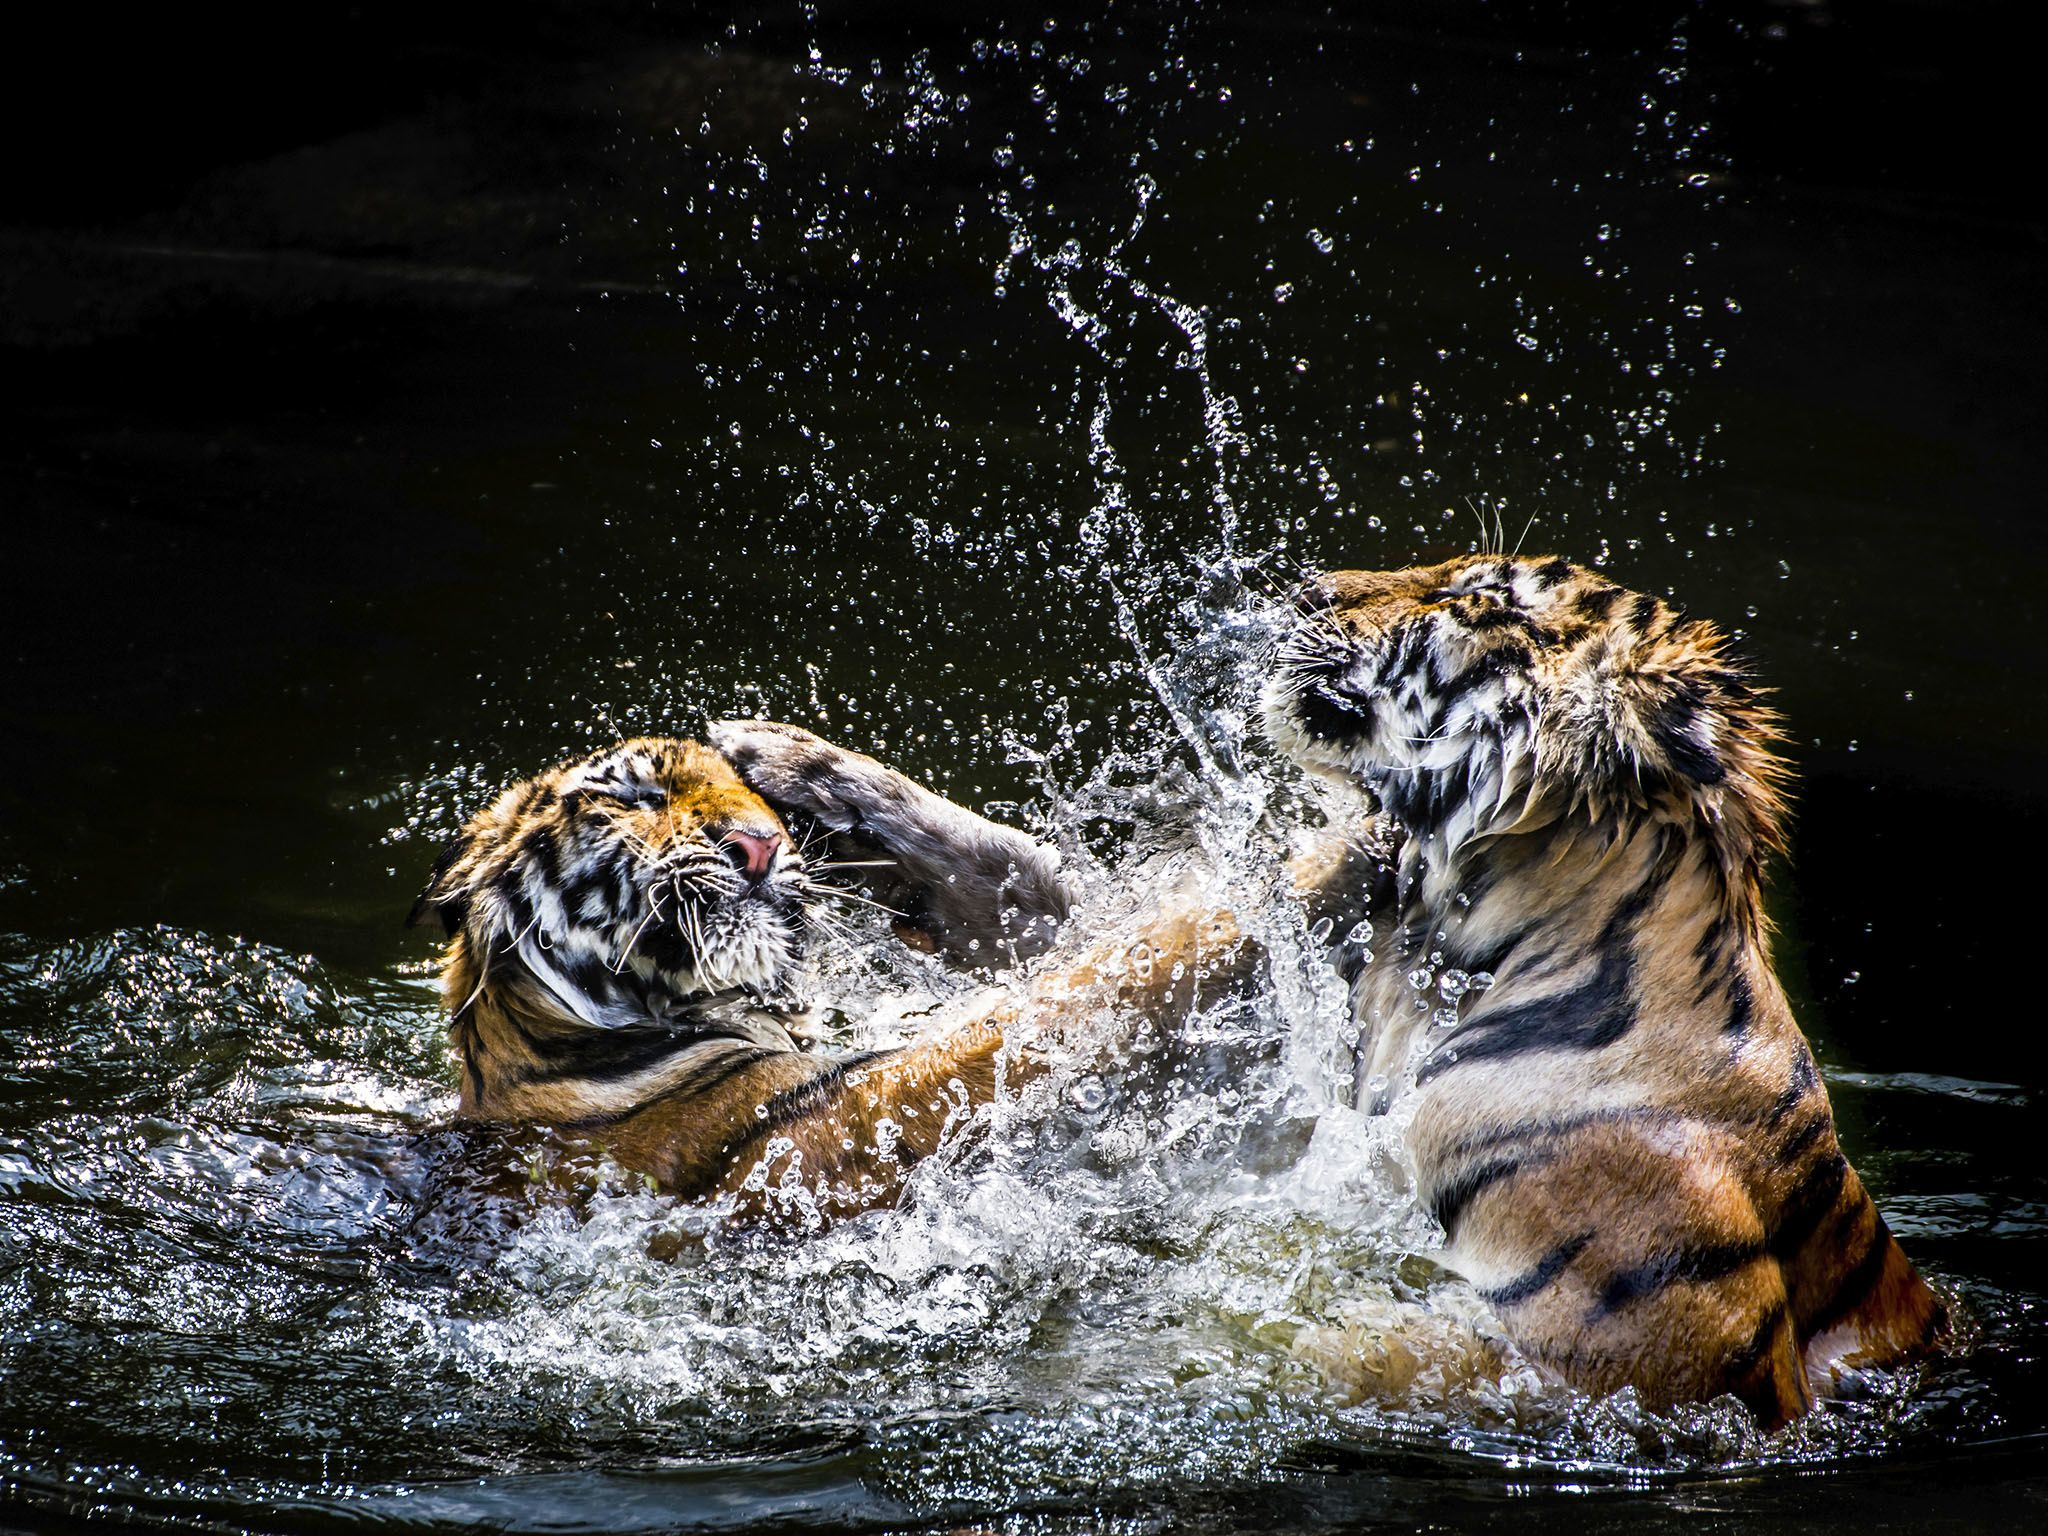 Tigers wrestle in the water. Tigers usually live 8 to 10 years in the wild. This image is from... [Photo of the day - فبراير 2016]